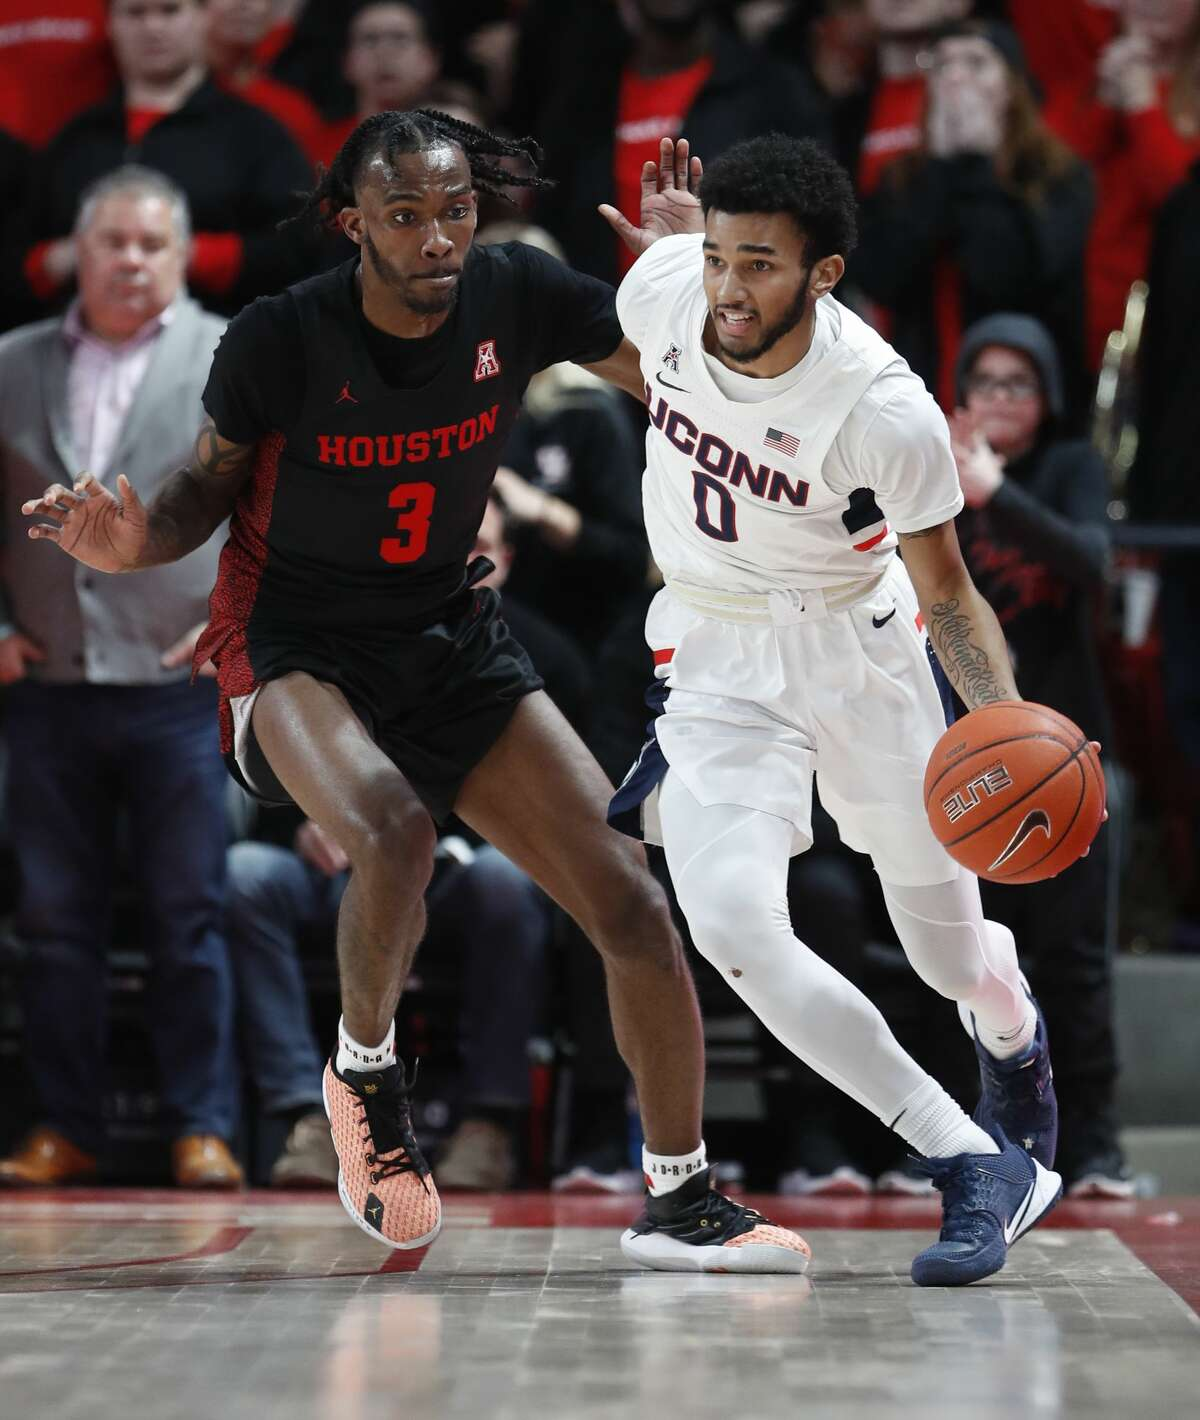 Houston Cougars guard DeJon Jarreau (3) puts the defense on against Connecticut Huskies guard Jalen Gaffney (0) during the second half of an NCAA basketball game at the Fertitta in Houston, Thursday, Jan. 23, 2020.